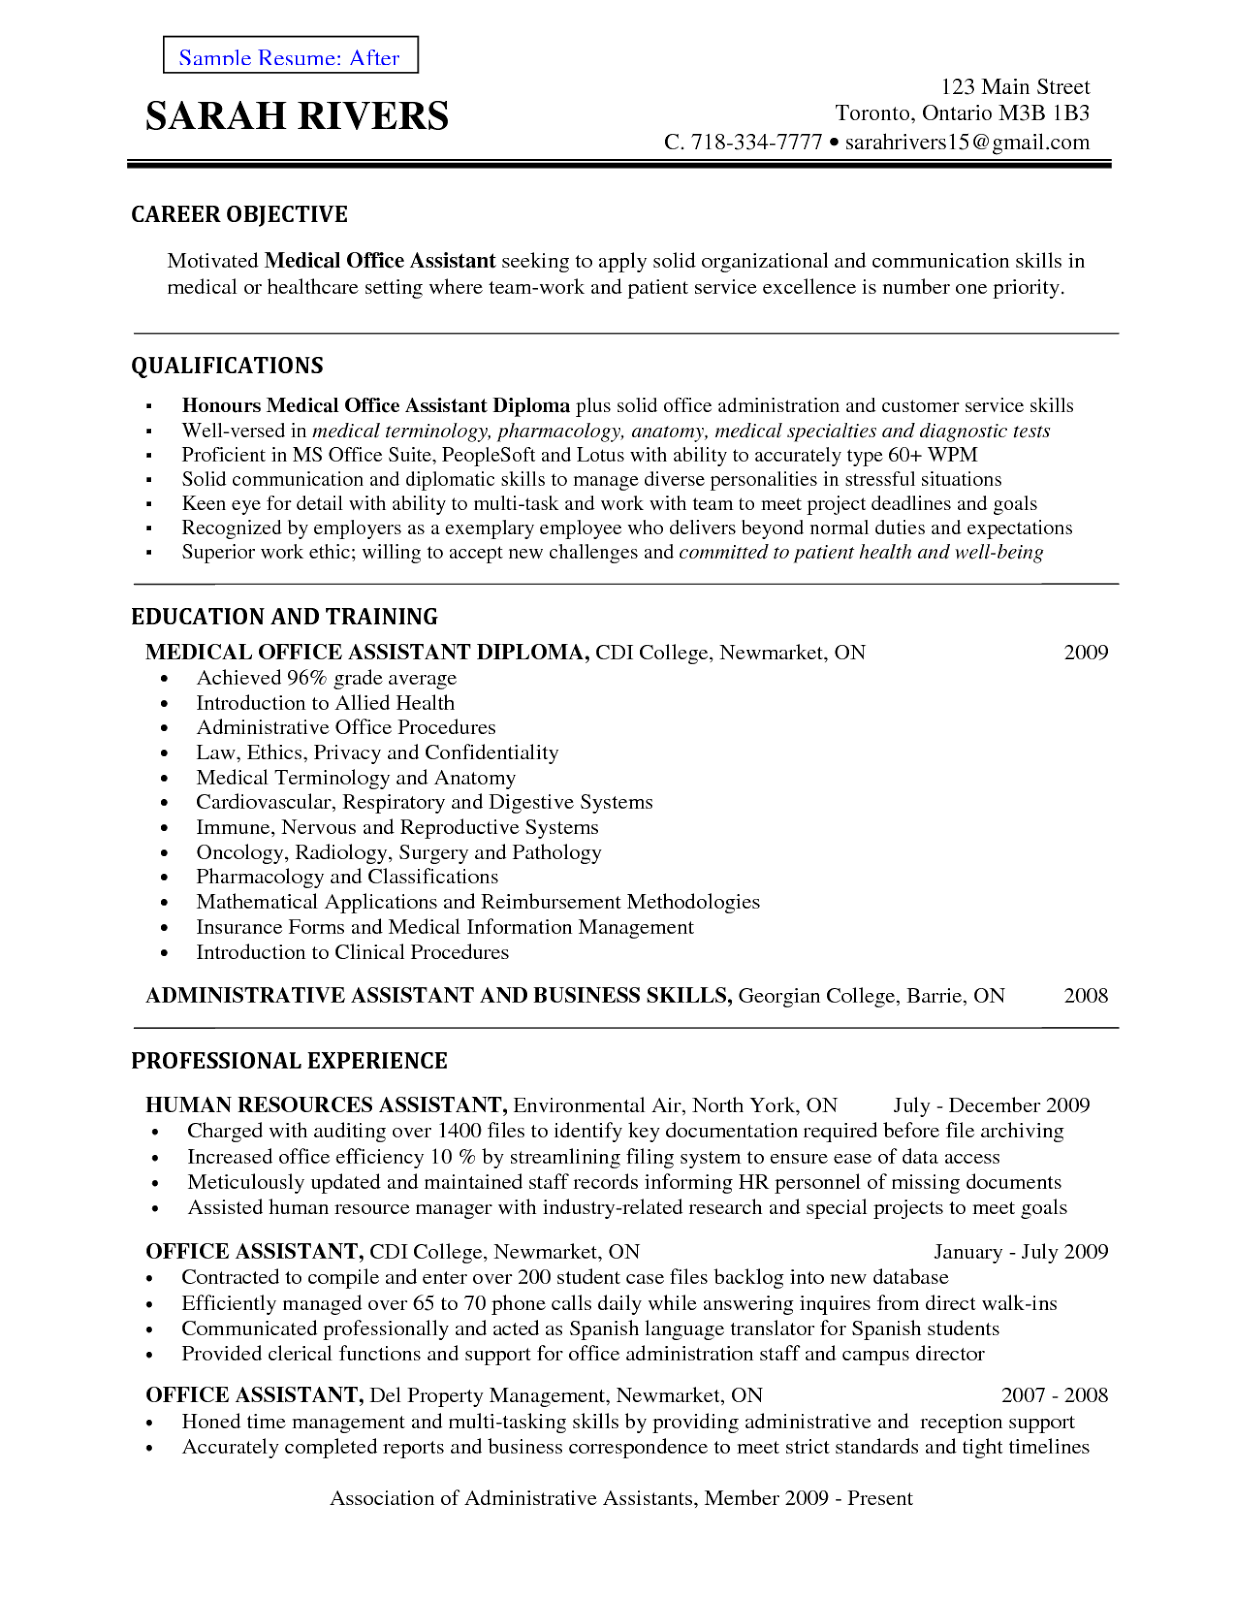 Sample Resume Profile Statements Resume CV Cover Letter - Sample profile for resume